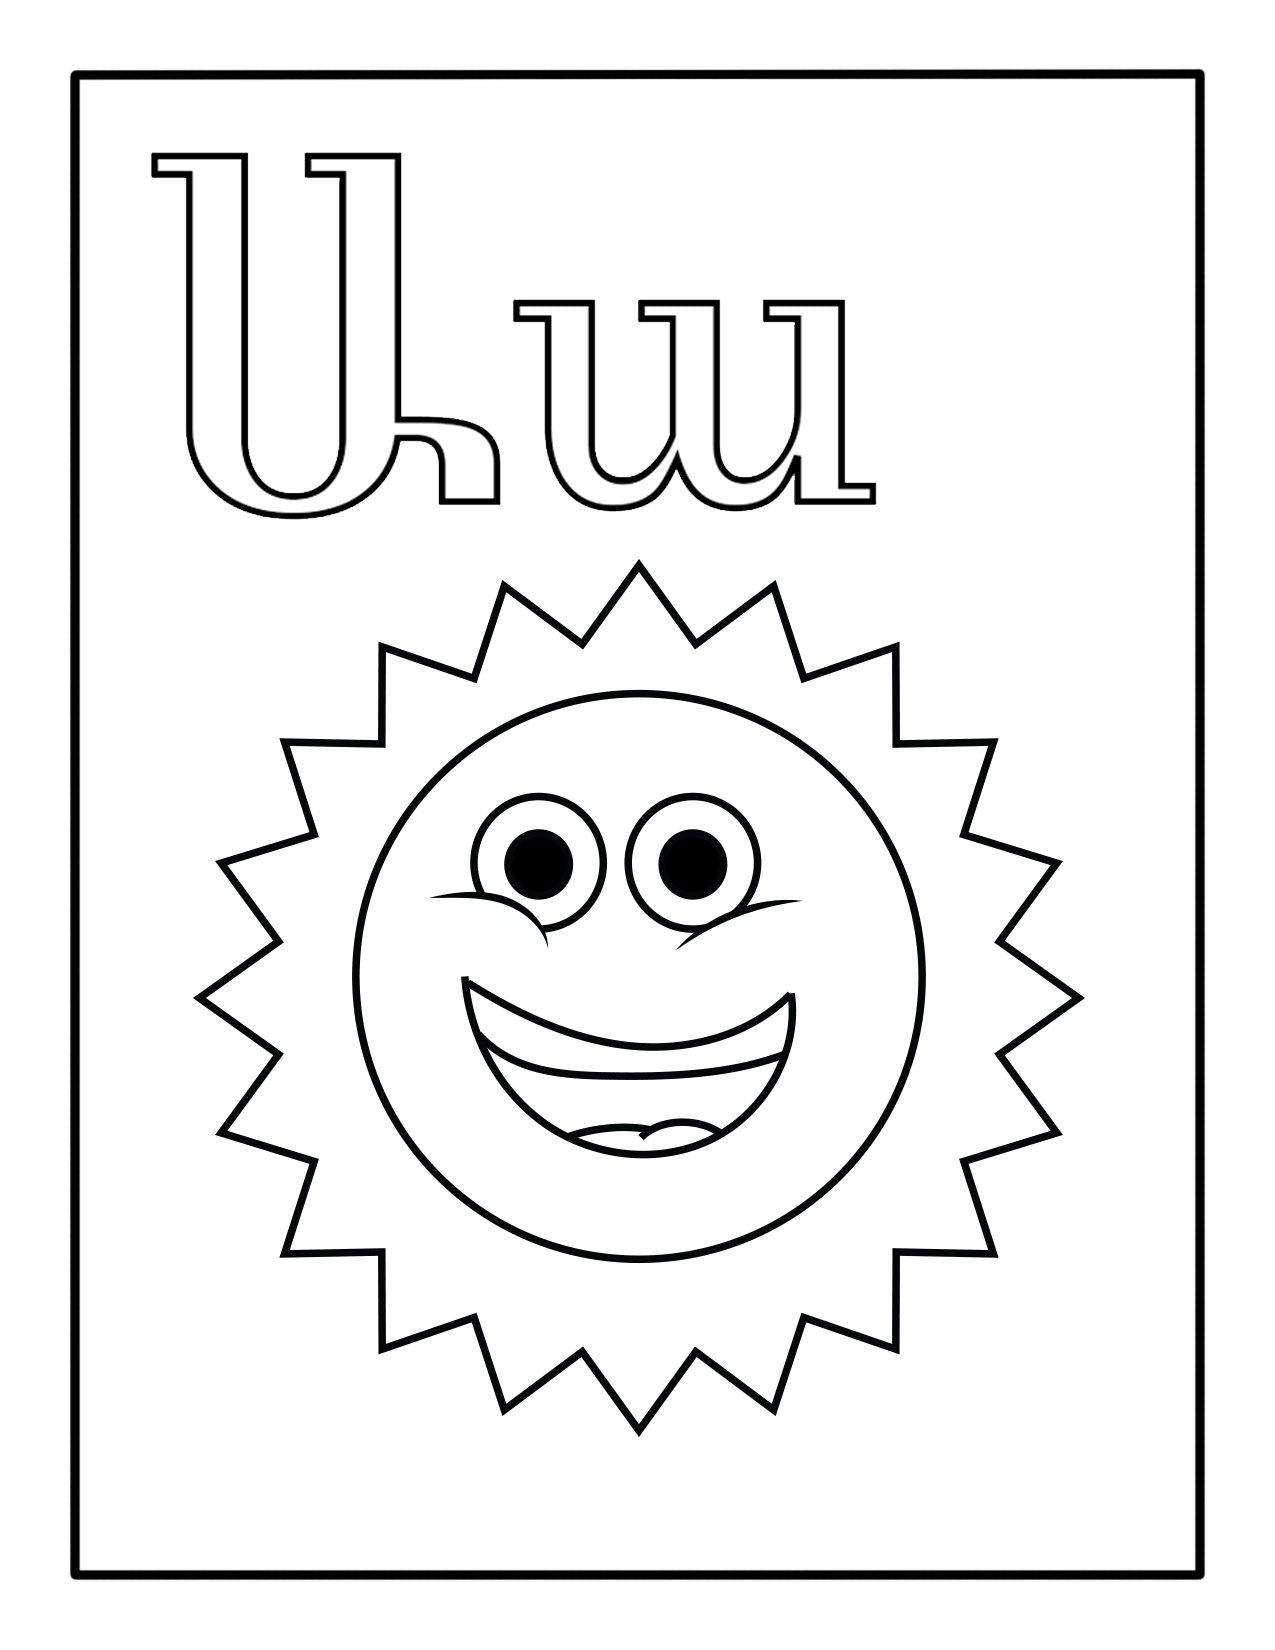 armenia coloring pages - photo#45